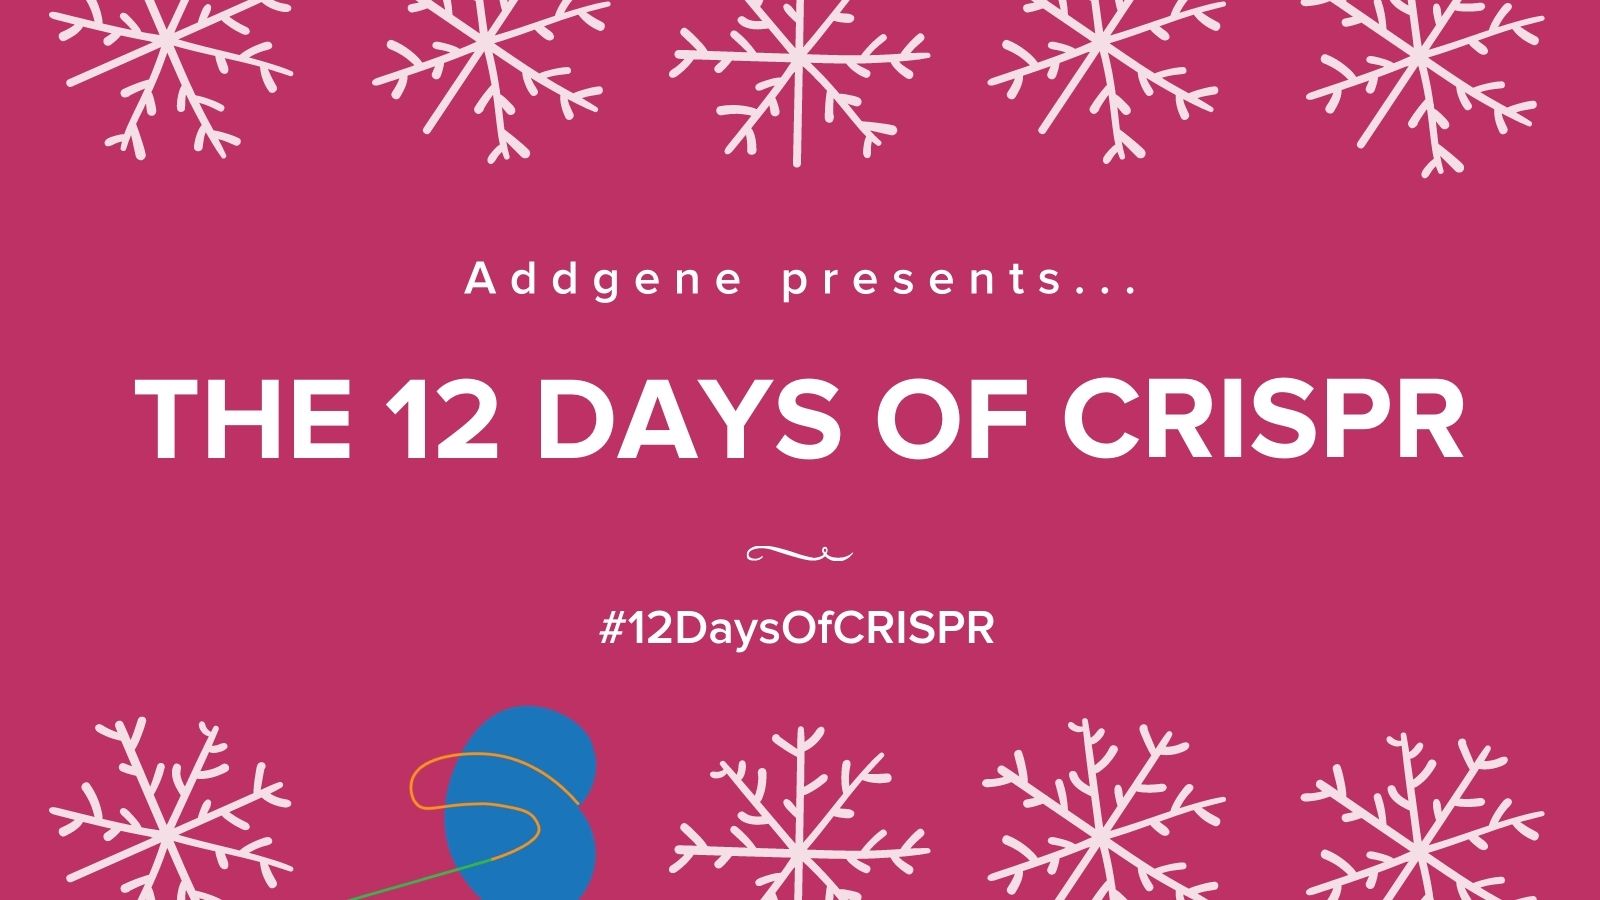 Addgene presents... the 12 days of CRISPR #12DaysOfCRISPR